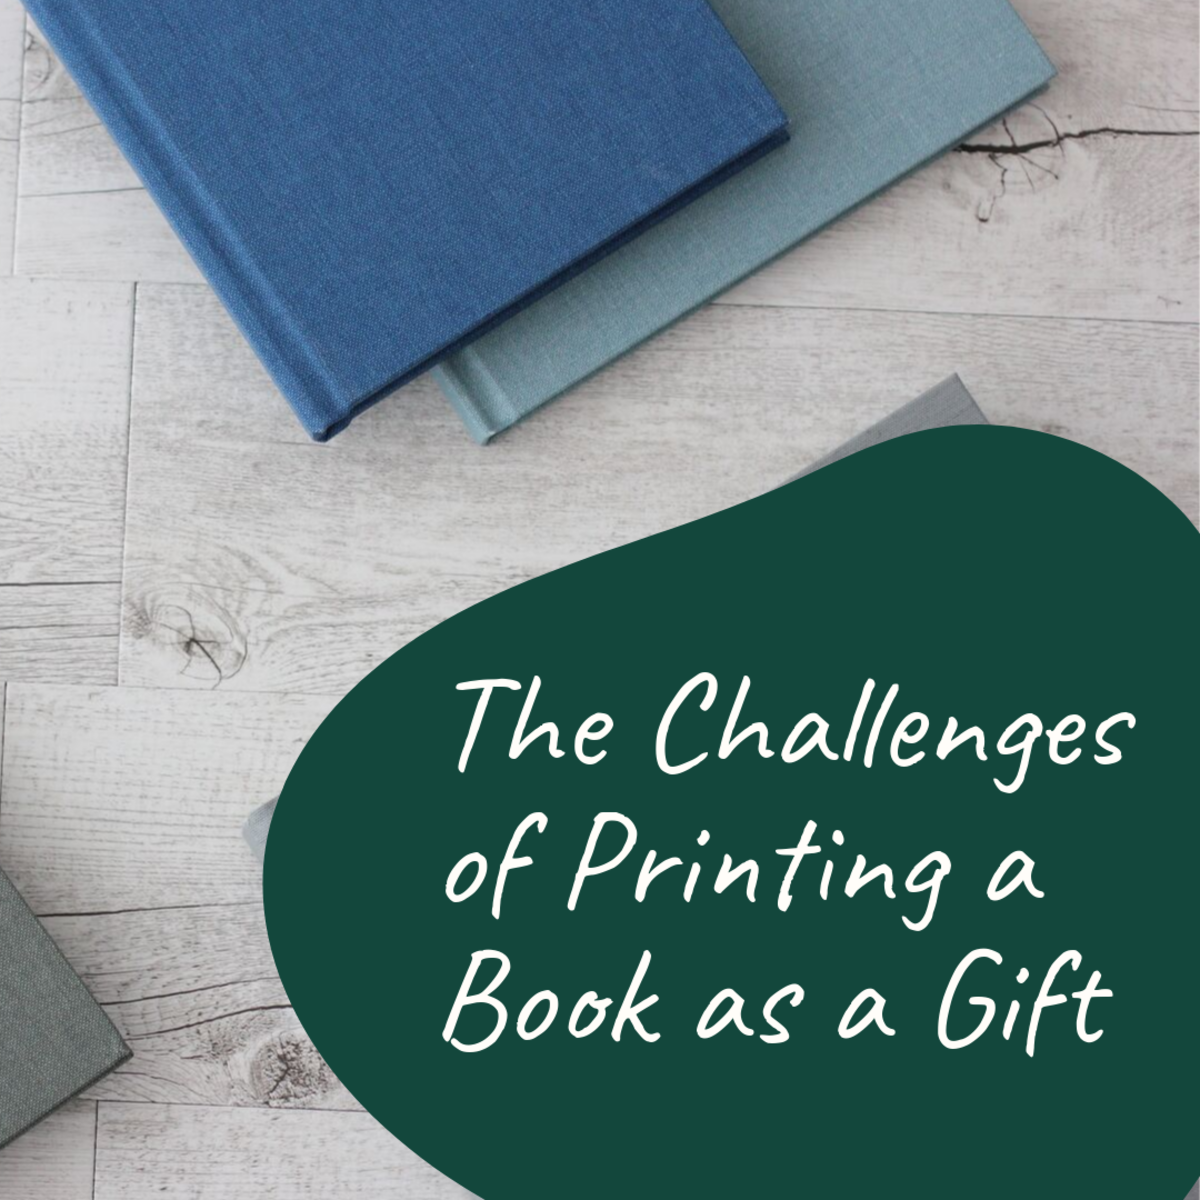 Print a Book for a Gift: Tips and Legal Concerns